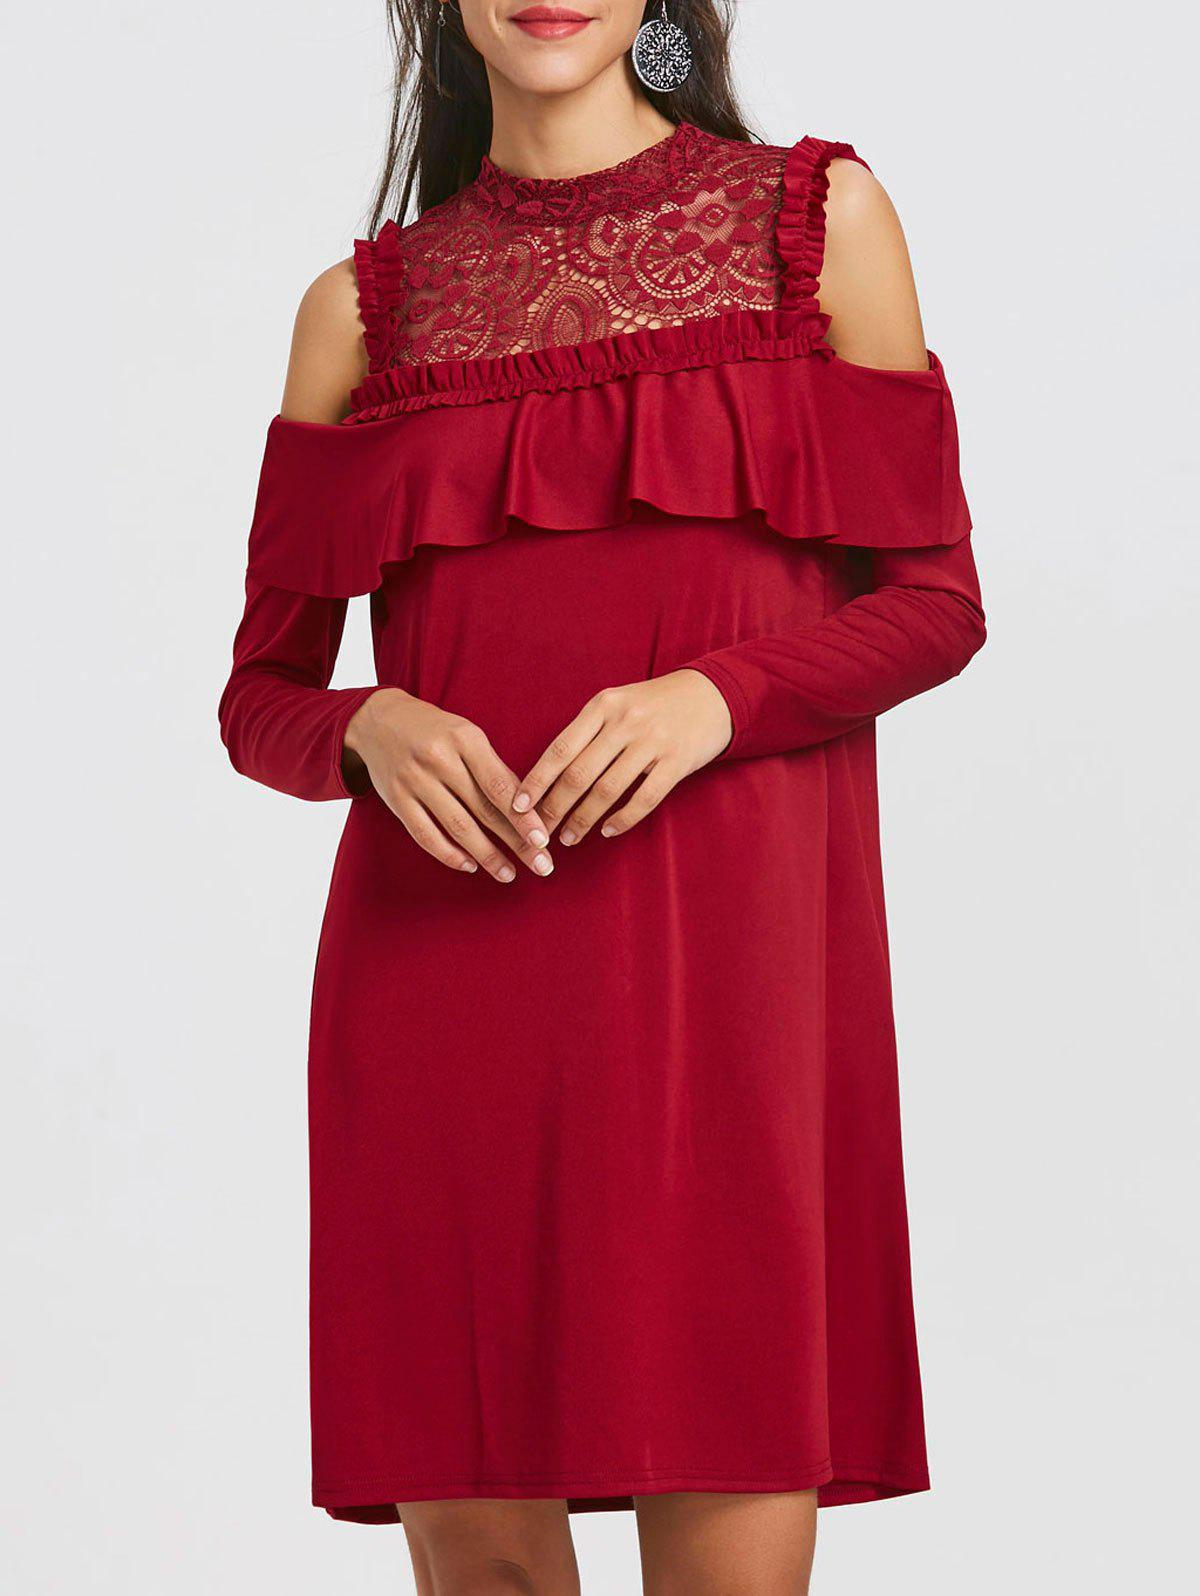 Lace Trim Open Shoulder Ruffle Dress - WINE RED XL